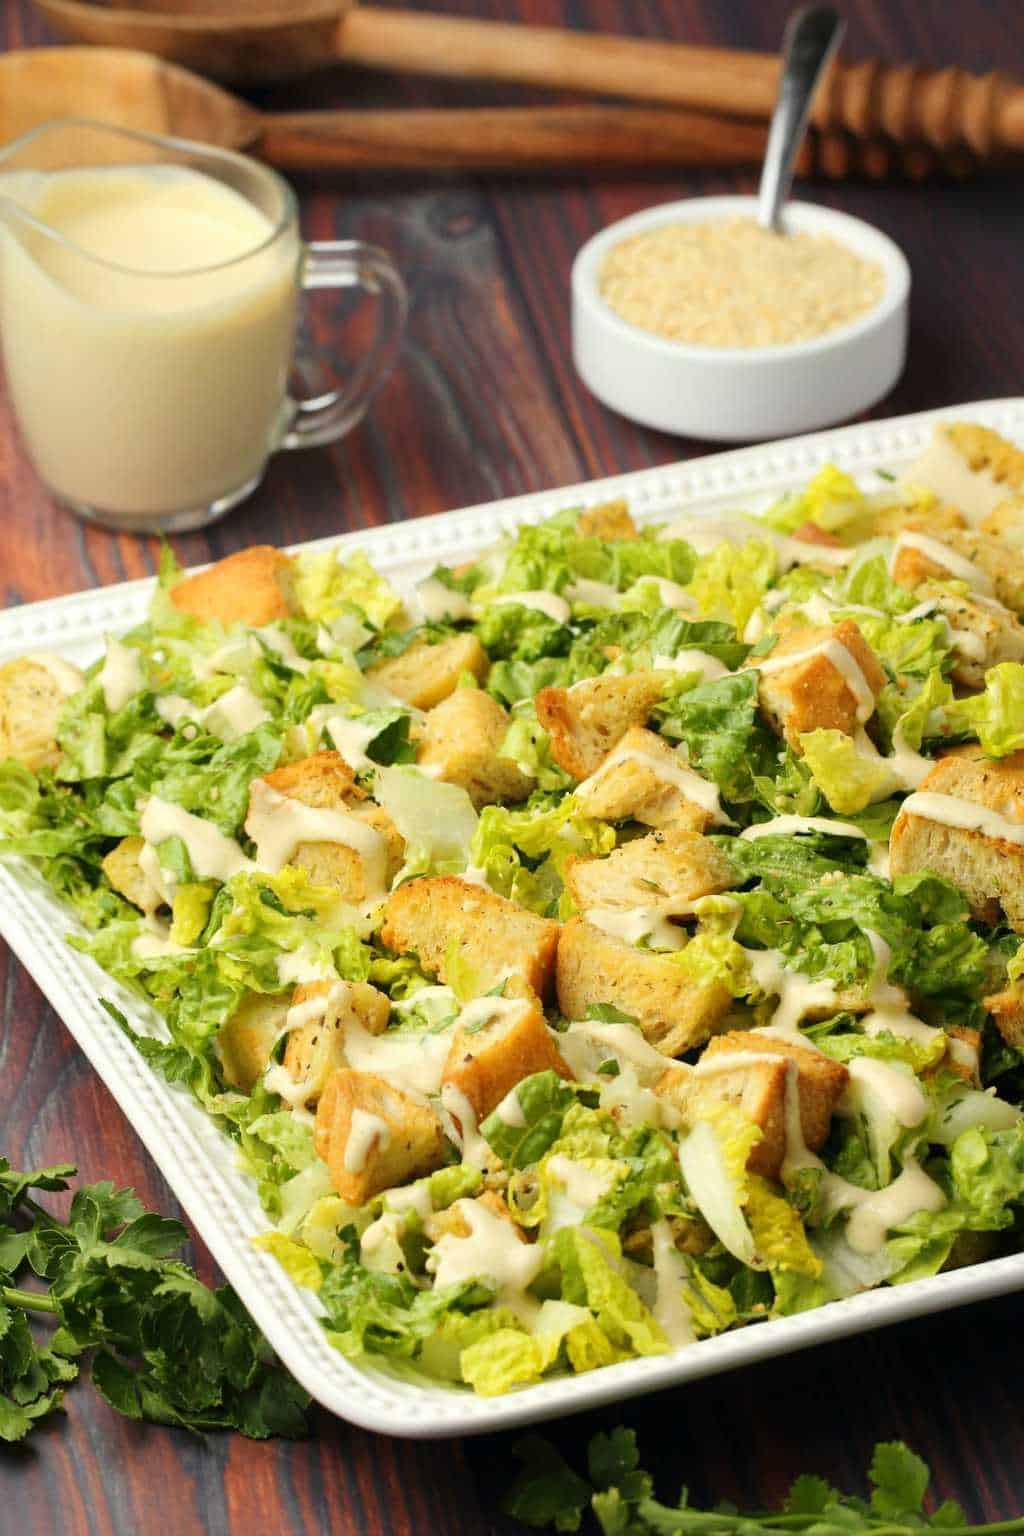 Vegan caesar salad topped with caesar dressing on a white salad platter.